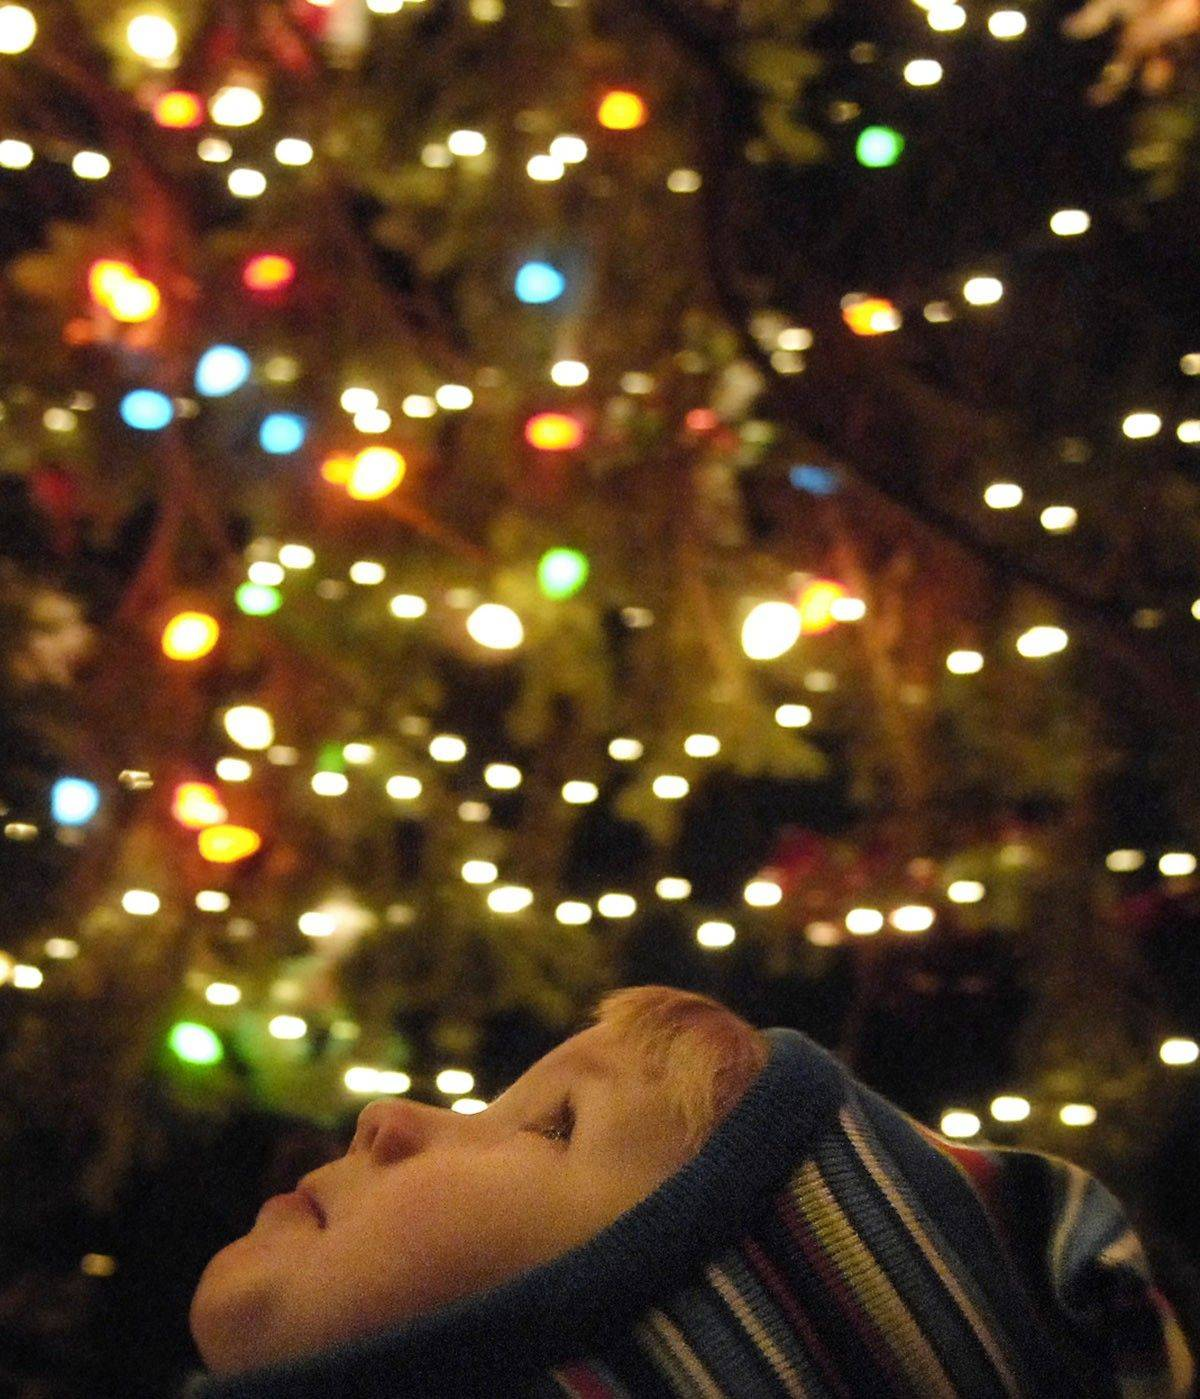 2-year-old Cameron Ziegler of Geneva leans his head back while being held up by his mom Jody to look at the lights on the Geneva Christmas tree last year.